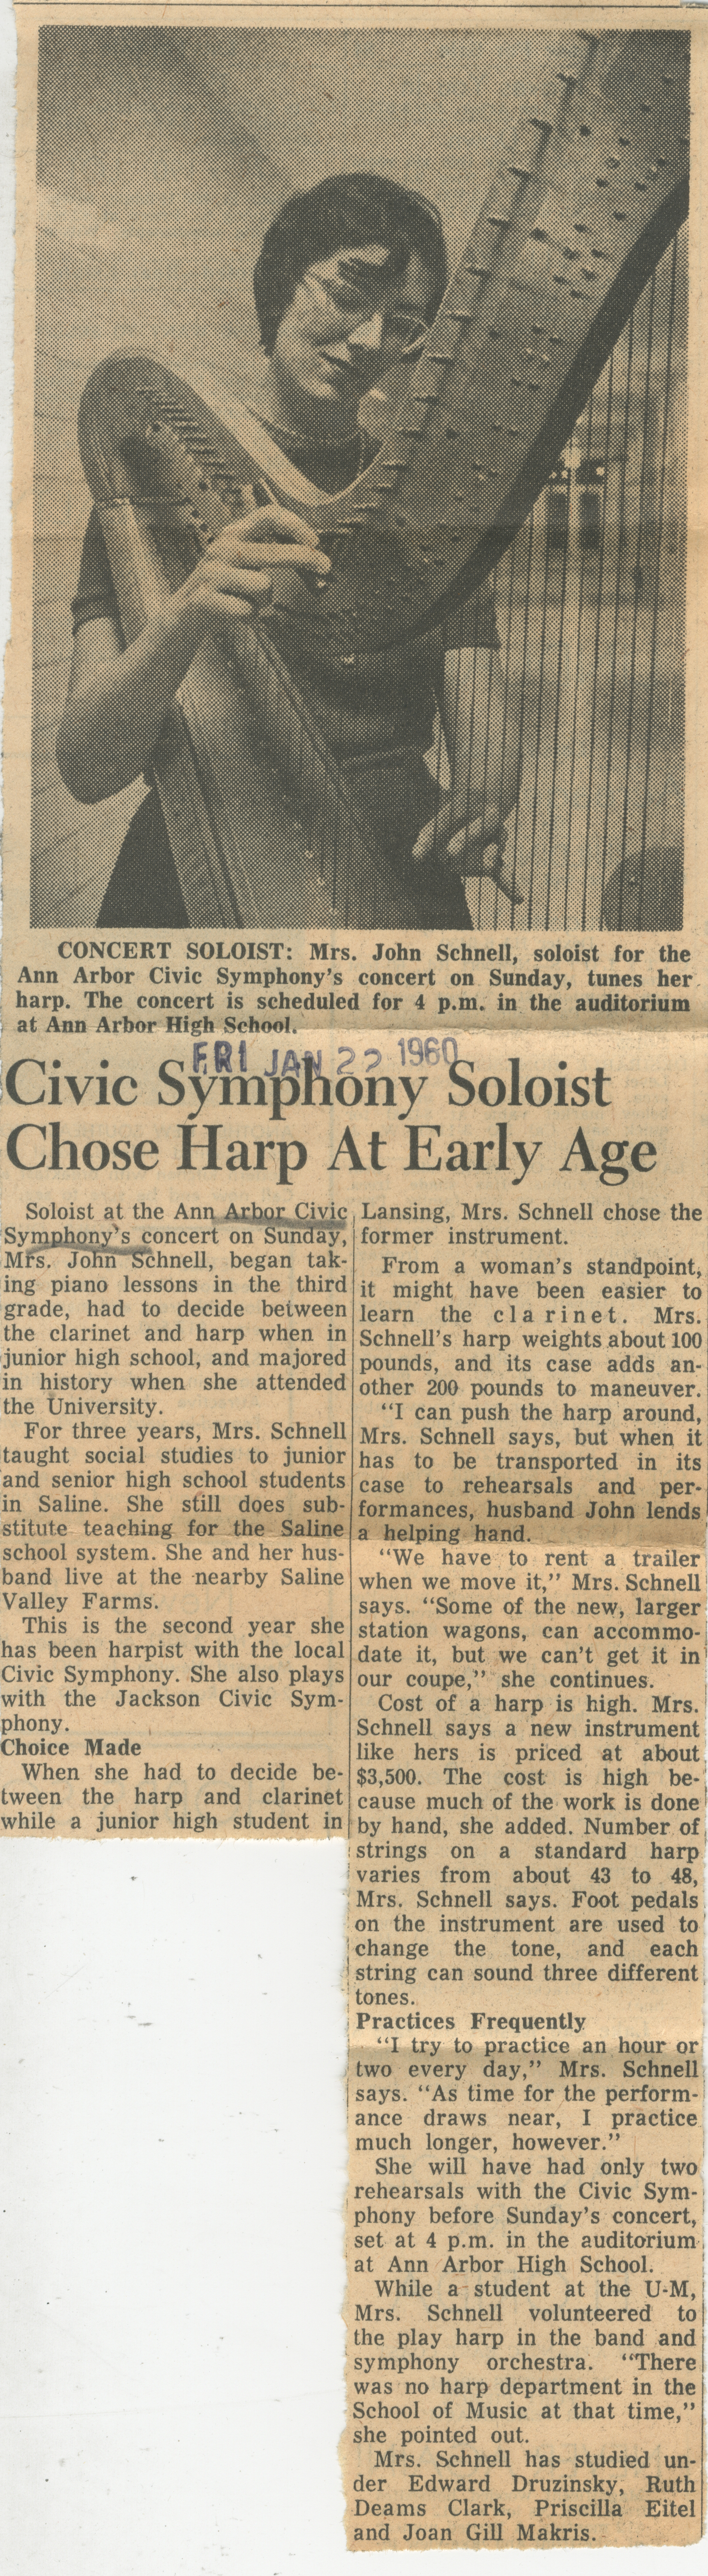 Civic Symphony Soloist Chose Harp At Early Age image